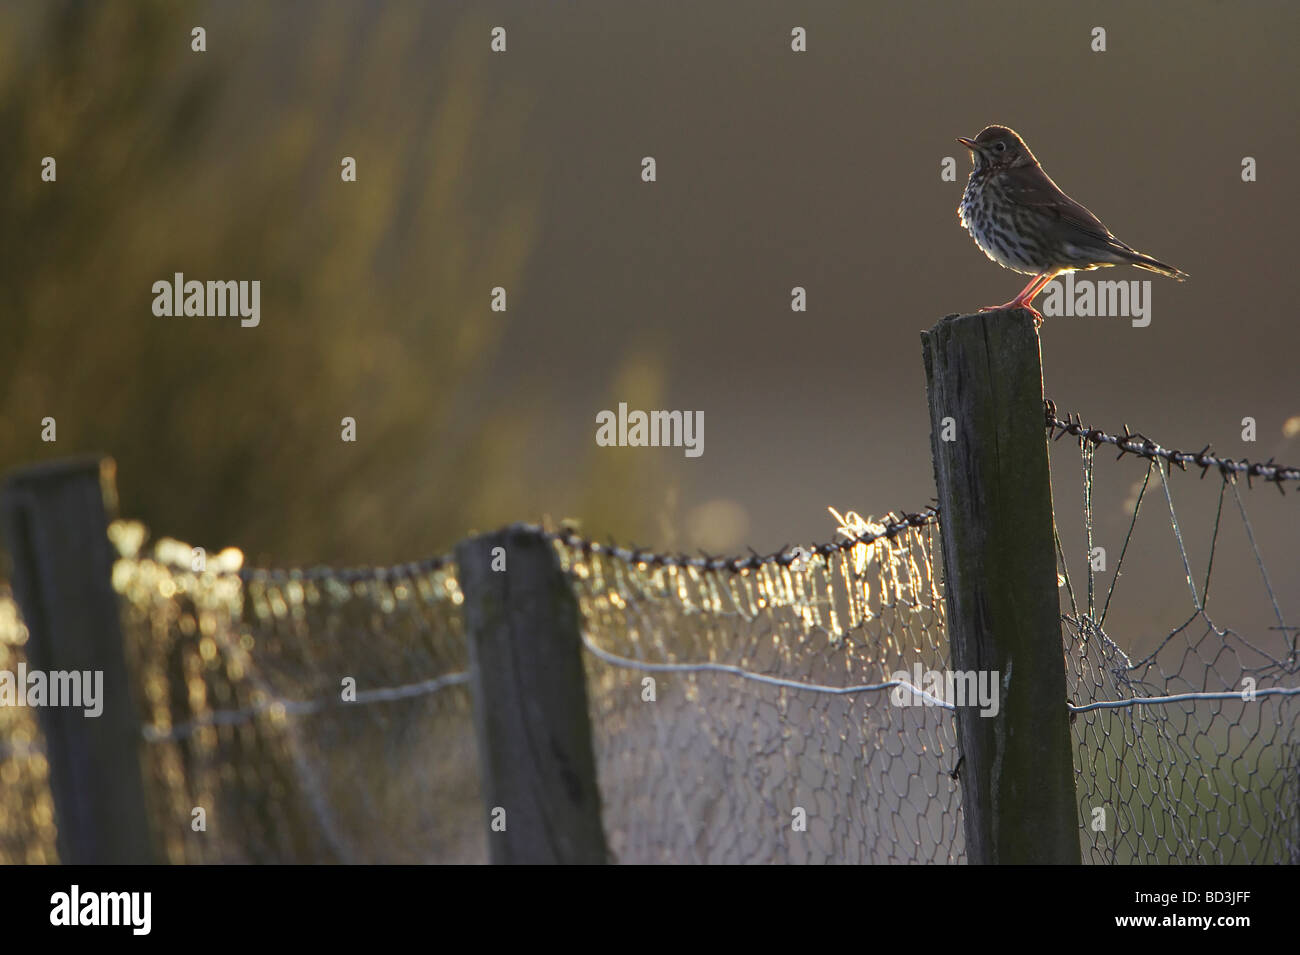 Song Thrush (Turdus philomelos) perched on fence post in late evening light - Stock Image